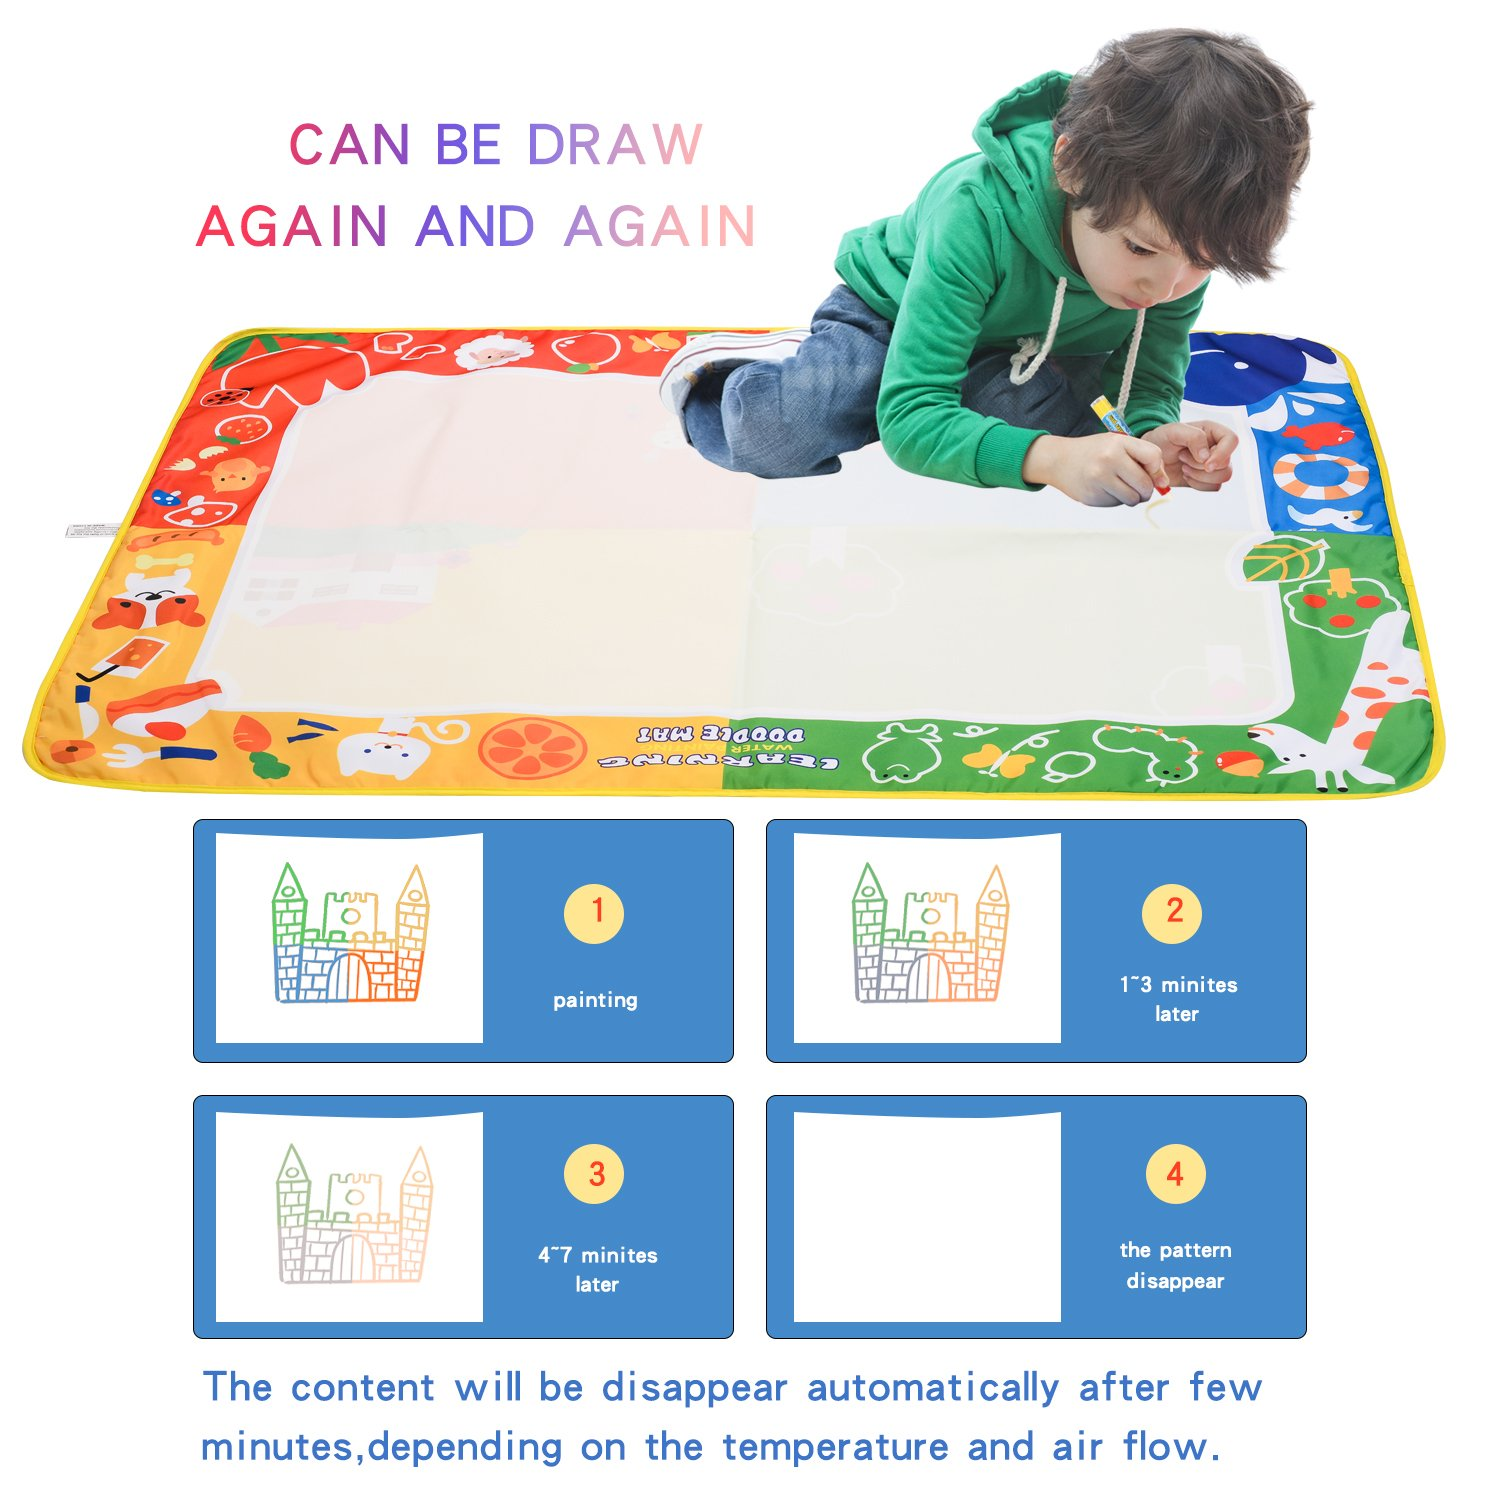 citymama Drawing Mat Doodle Magic mat water Drawing & writing Mat painting board 4 Colors with 3 Magic Drawing Pens and 15 Molds Kids Educational Toy Mat Gift for Children XL Size 40'' x 28'' by citymama (Image #4)